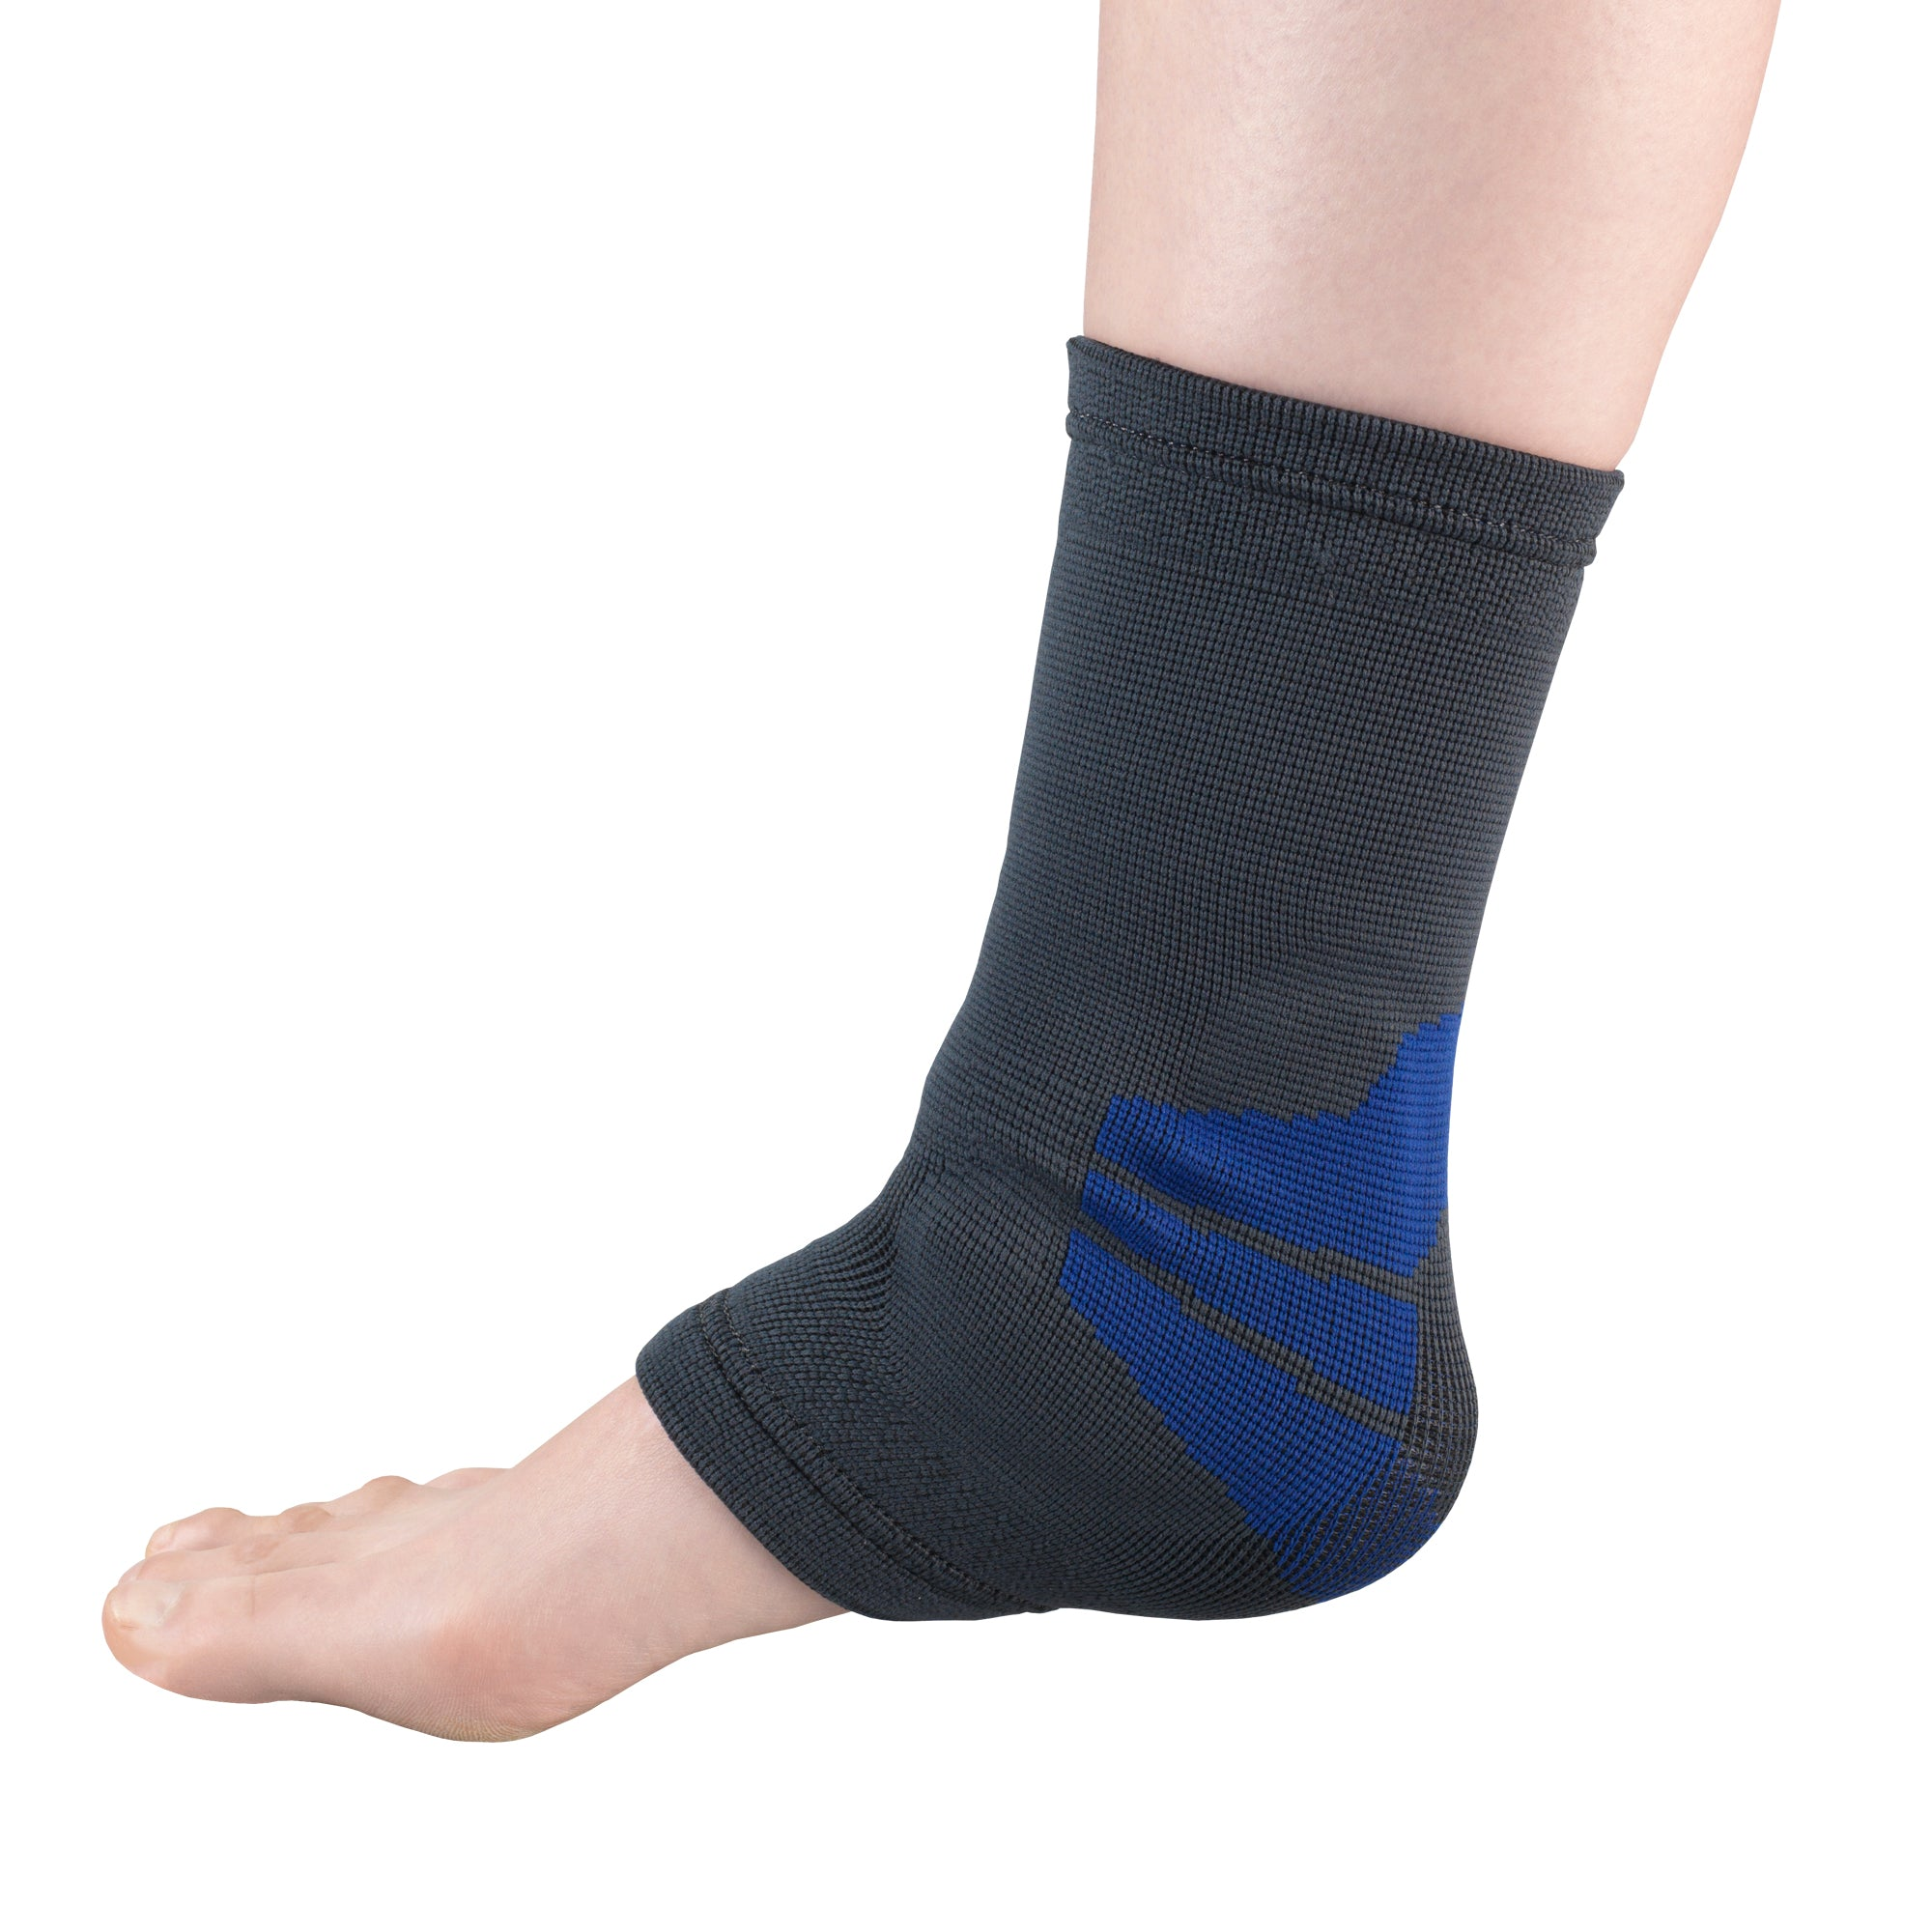 --Side of ANKLE SUPPORT WITH COMPRESSION GEL INSERT--